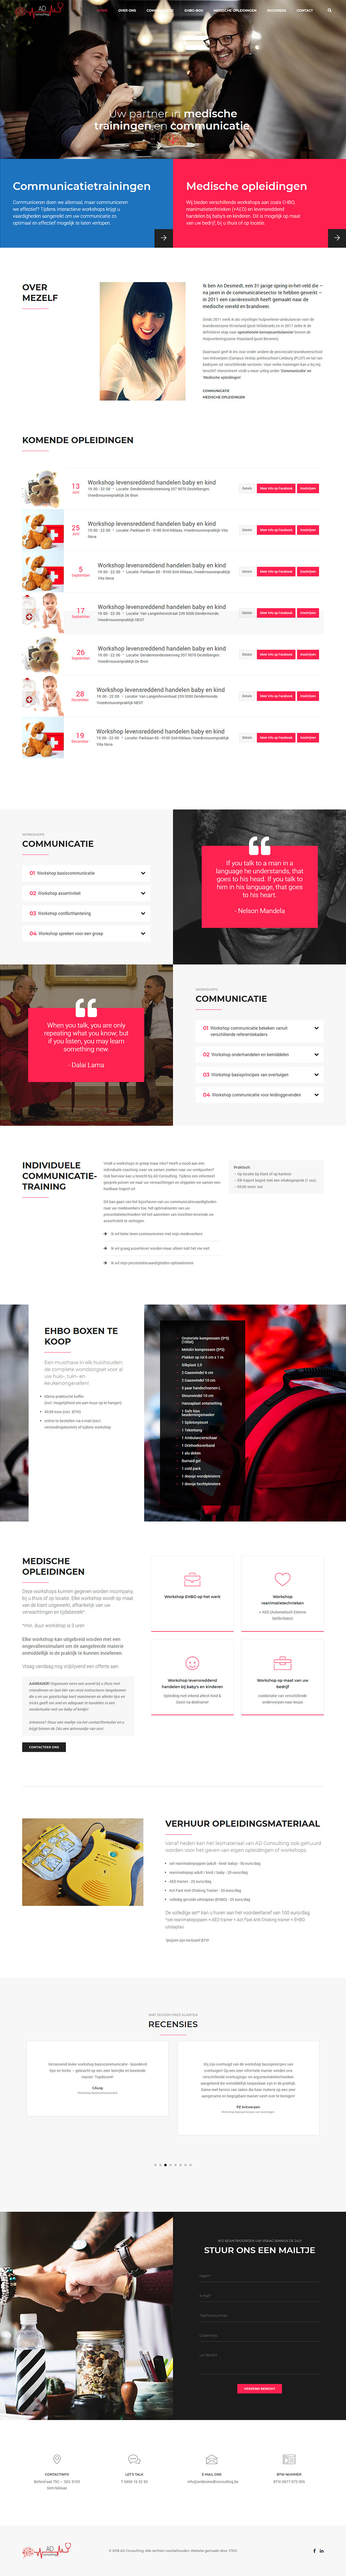 andesmedt consulting preview volledige website